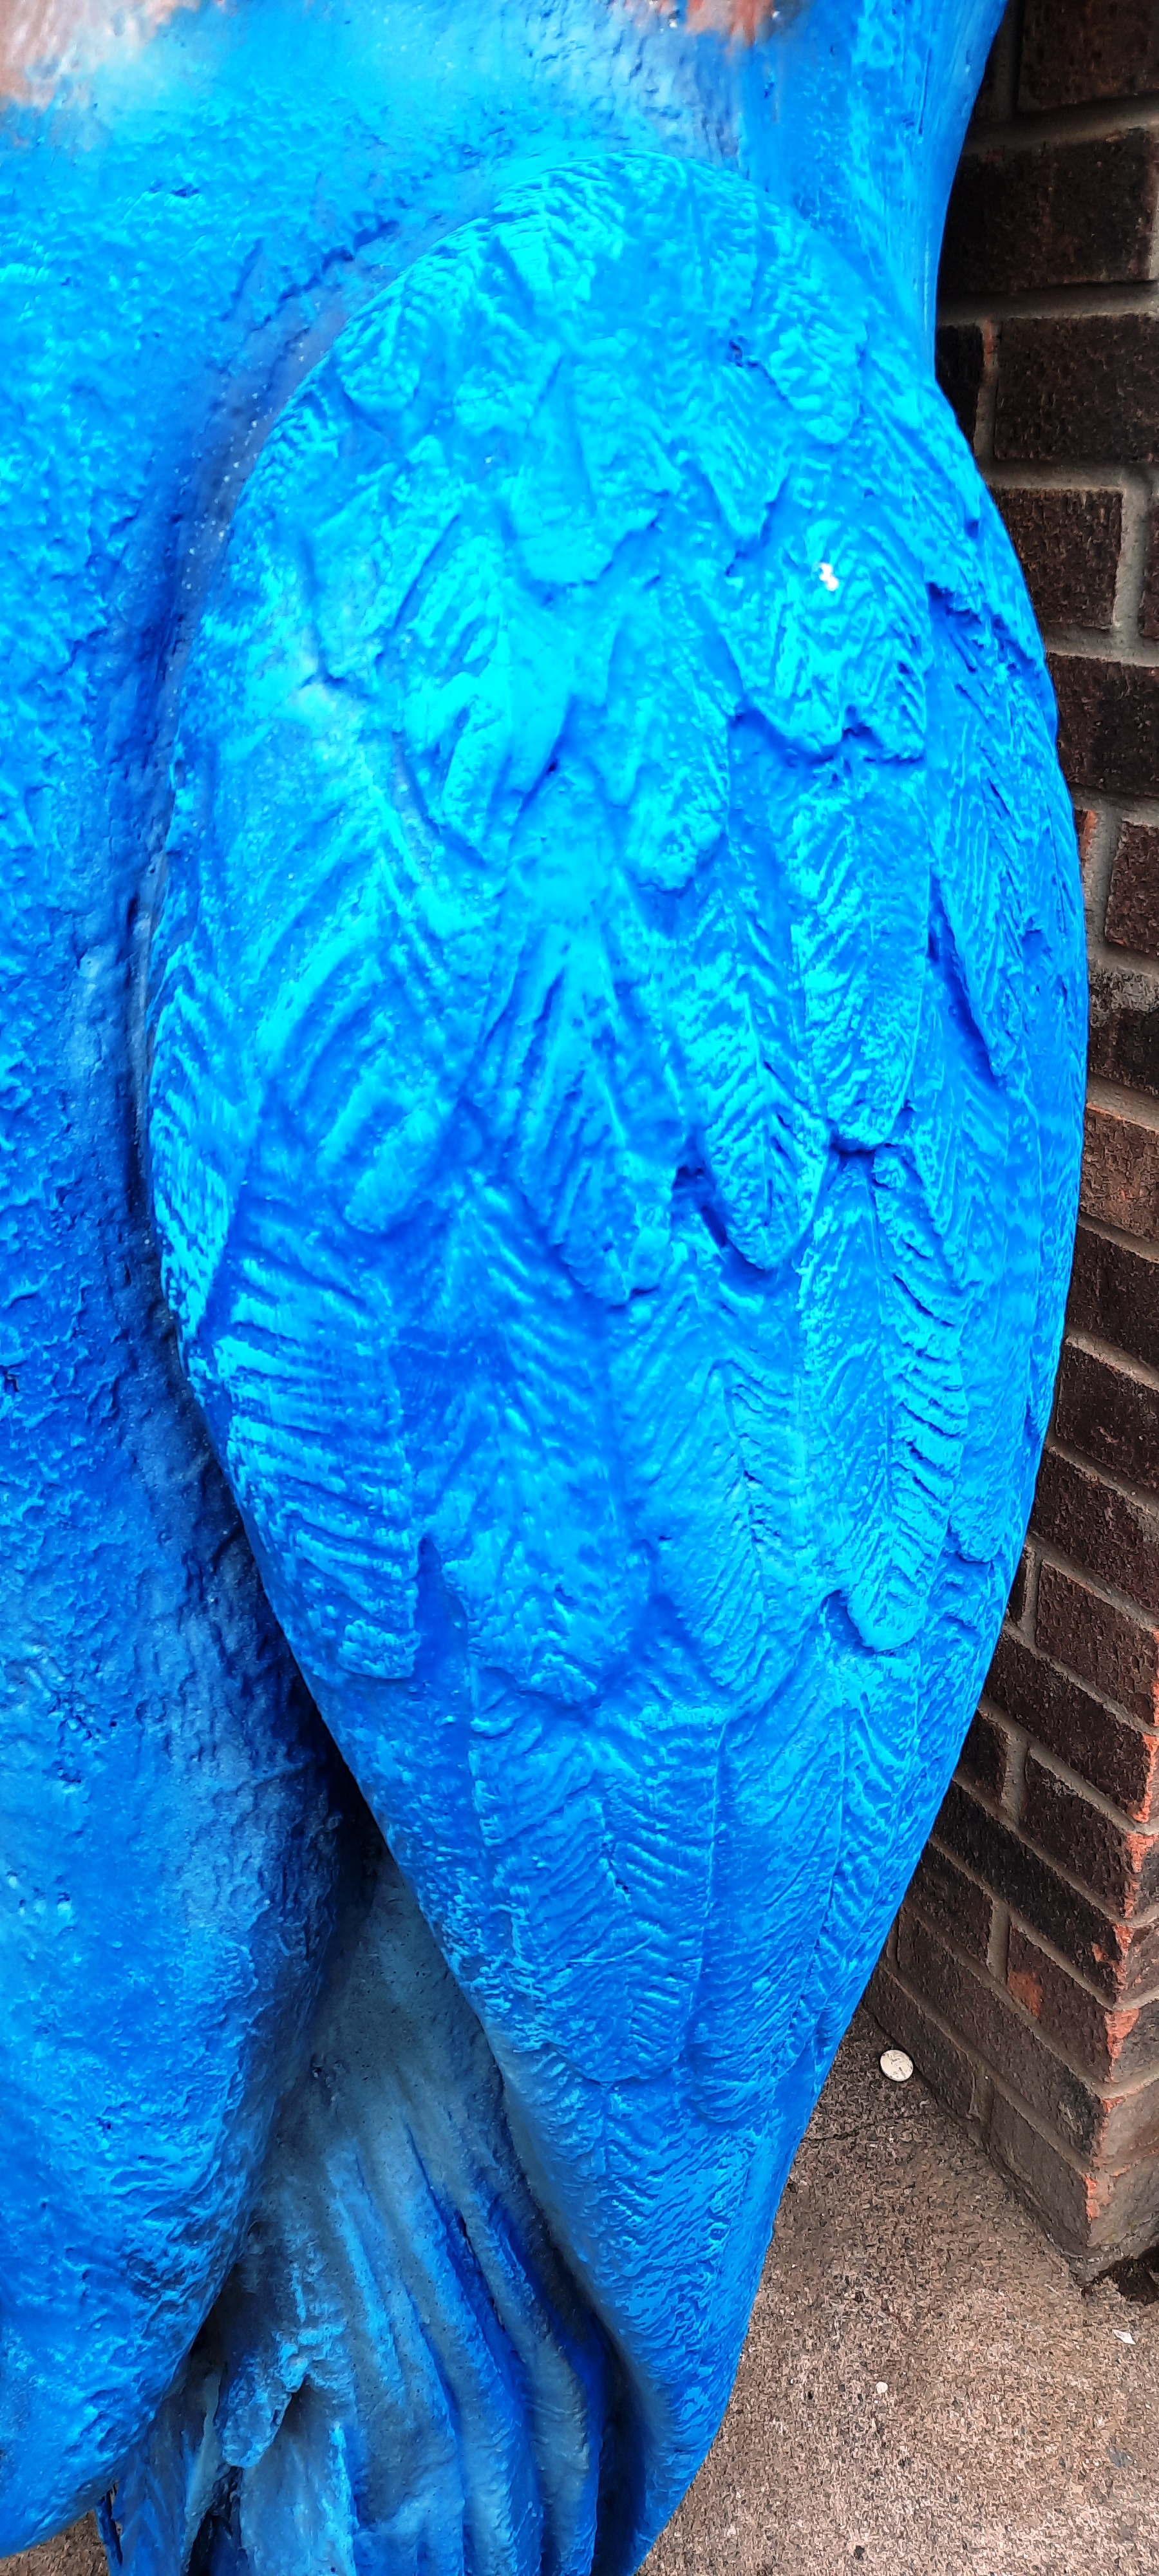 MONTY PYTHON THEMED ' DEAD PARROT SKETCH ' OVERSIZE PROP REPLICA - Image 6 of 9